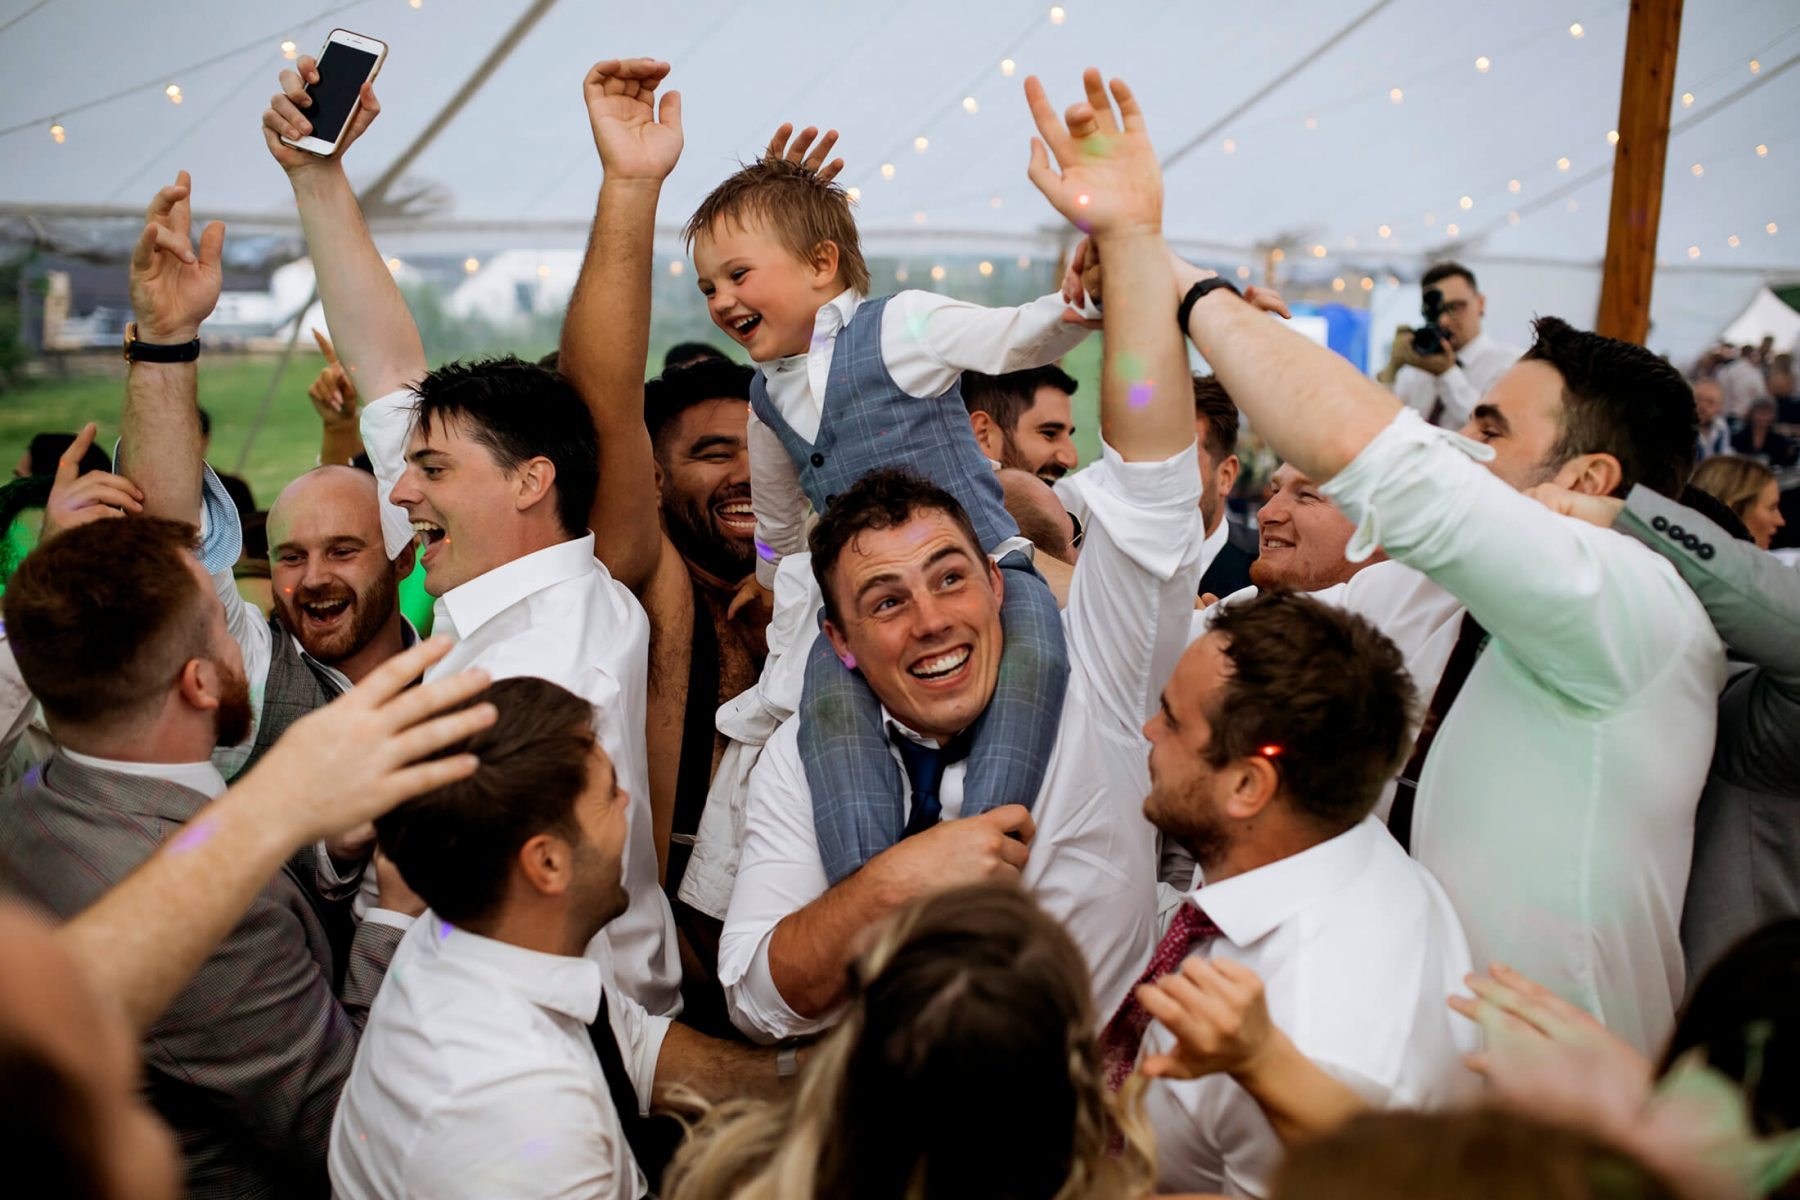 Relaxed wedding photographer - A young boy is lofted onto a mans shoulders on the dancefloor during the wedding party.